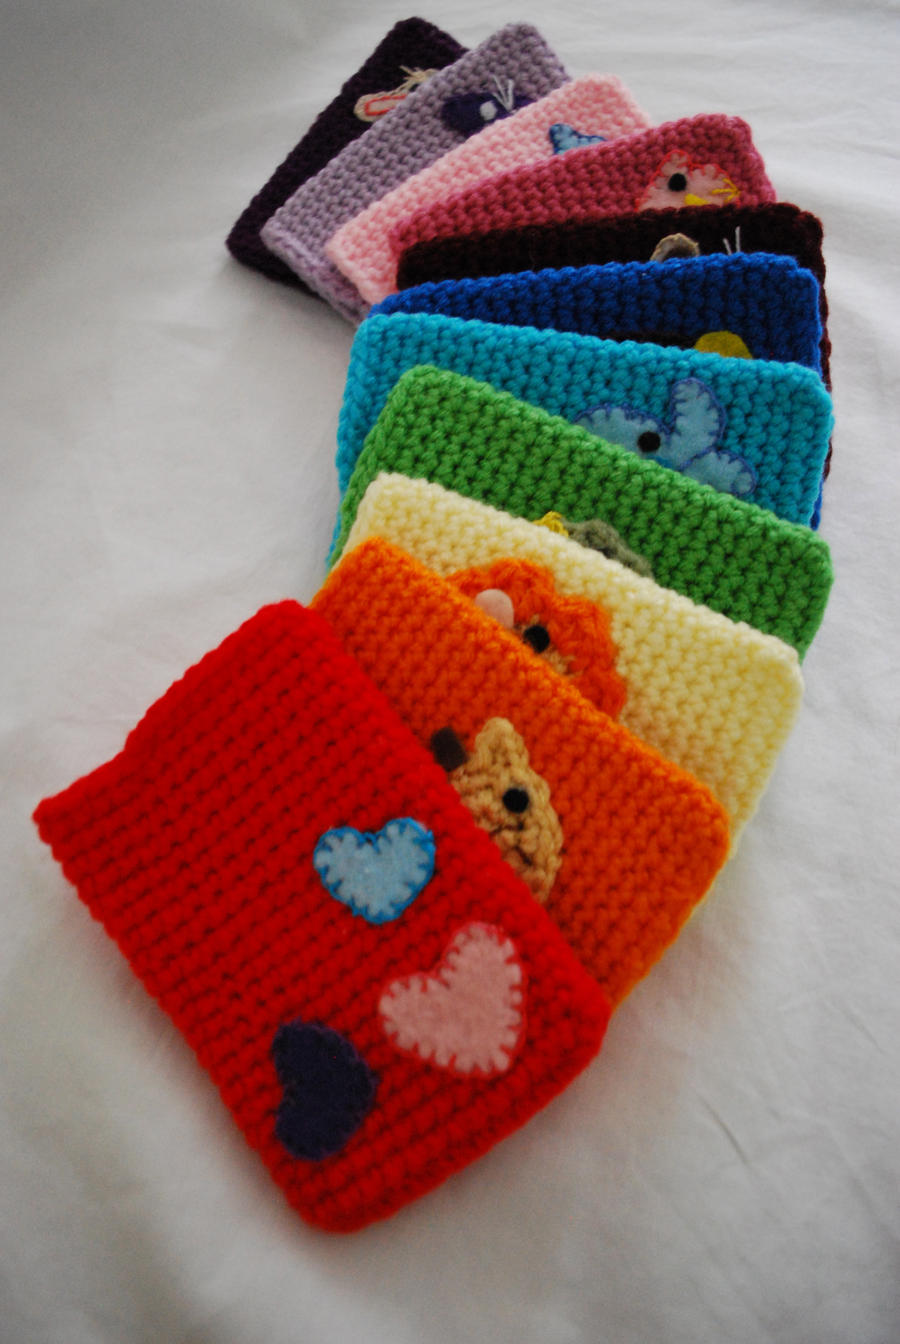 Free Crochet Pattern For I Phone Case : Crochet smart phone cases by hiro-chan28 on DeviantArt